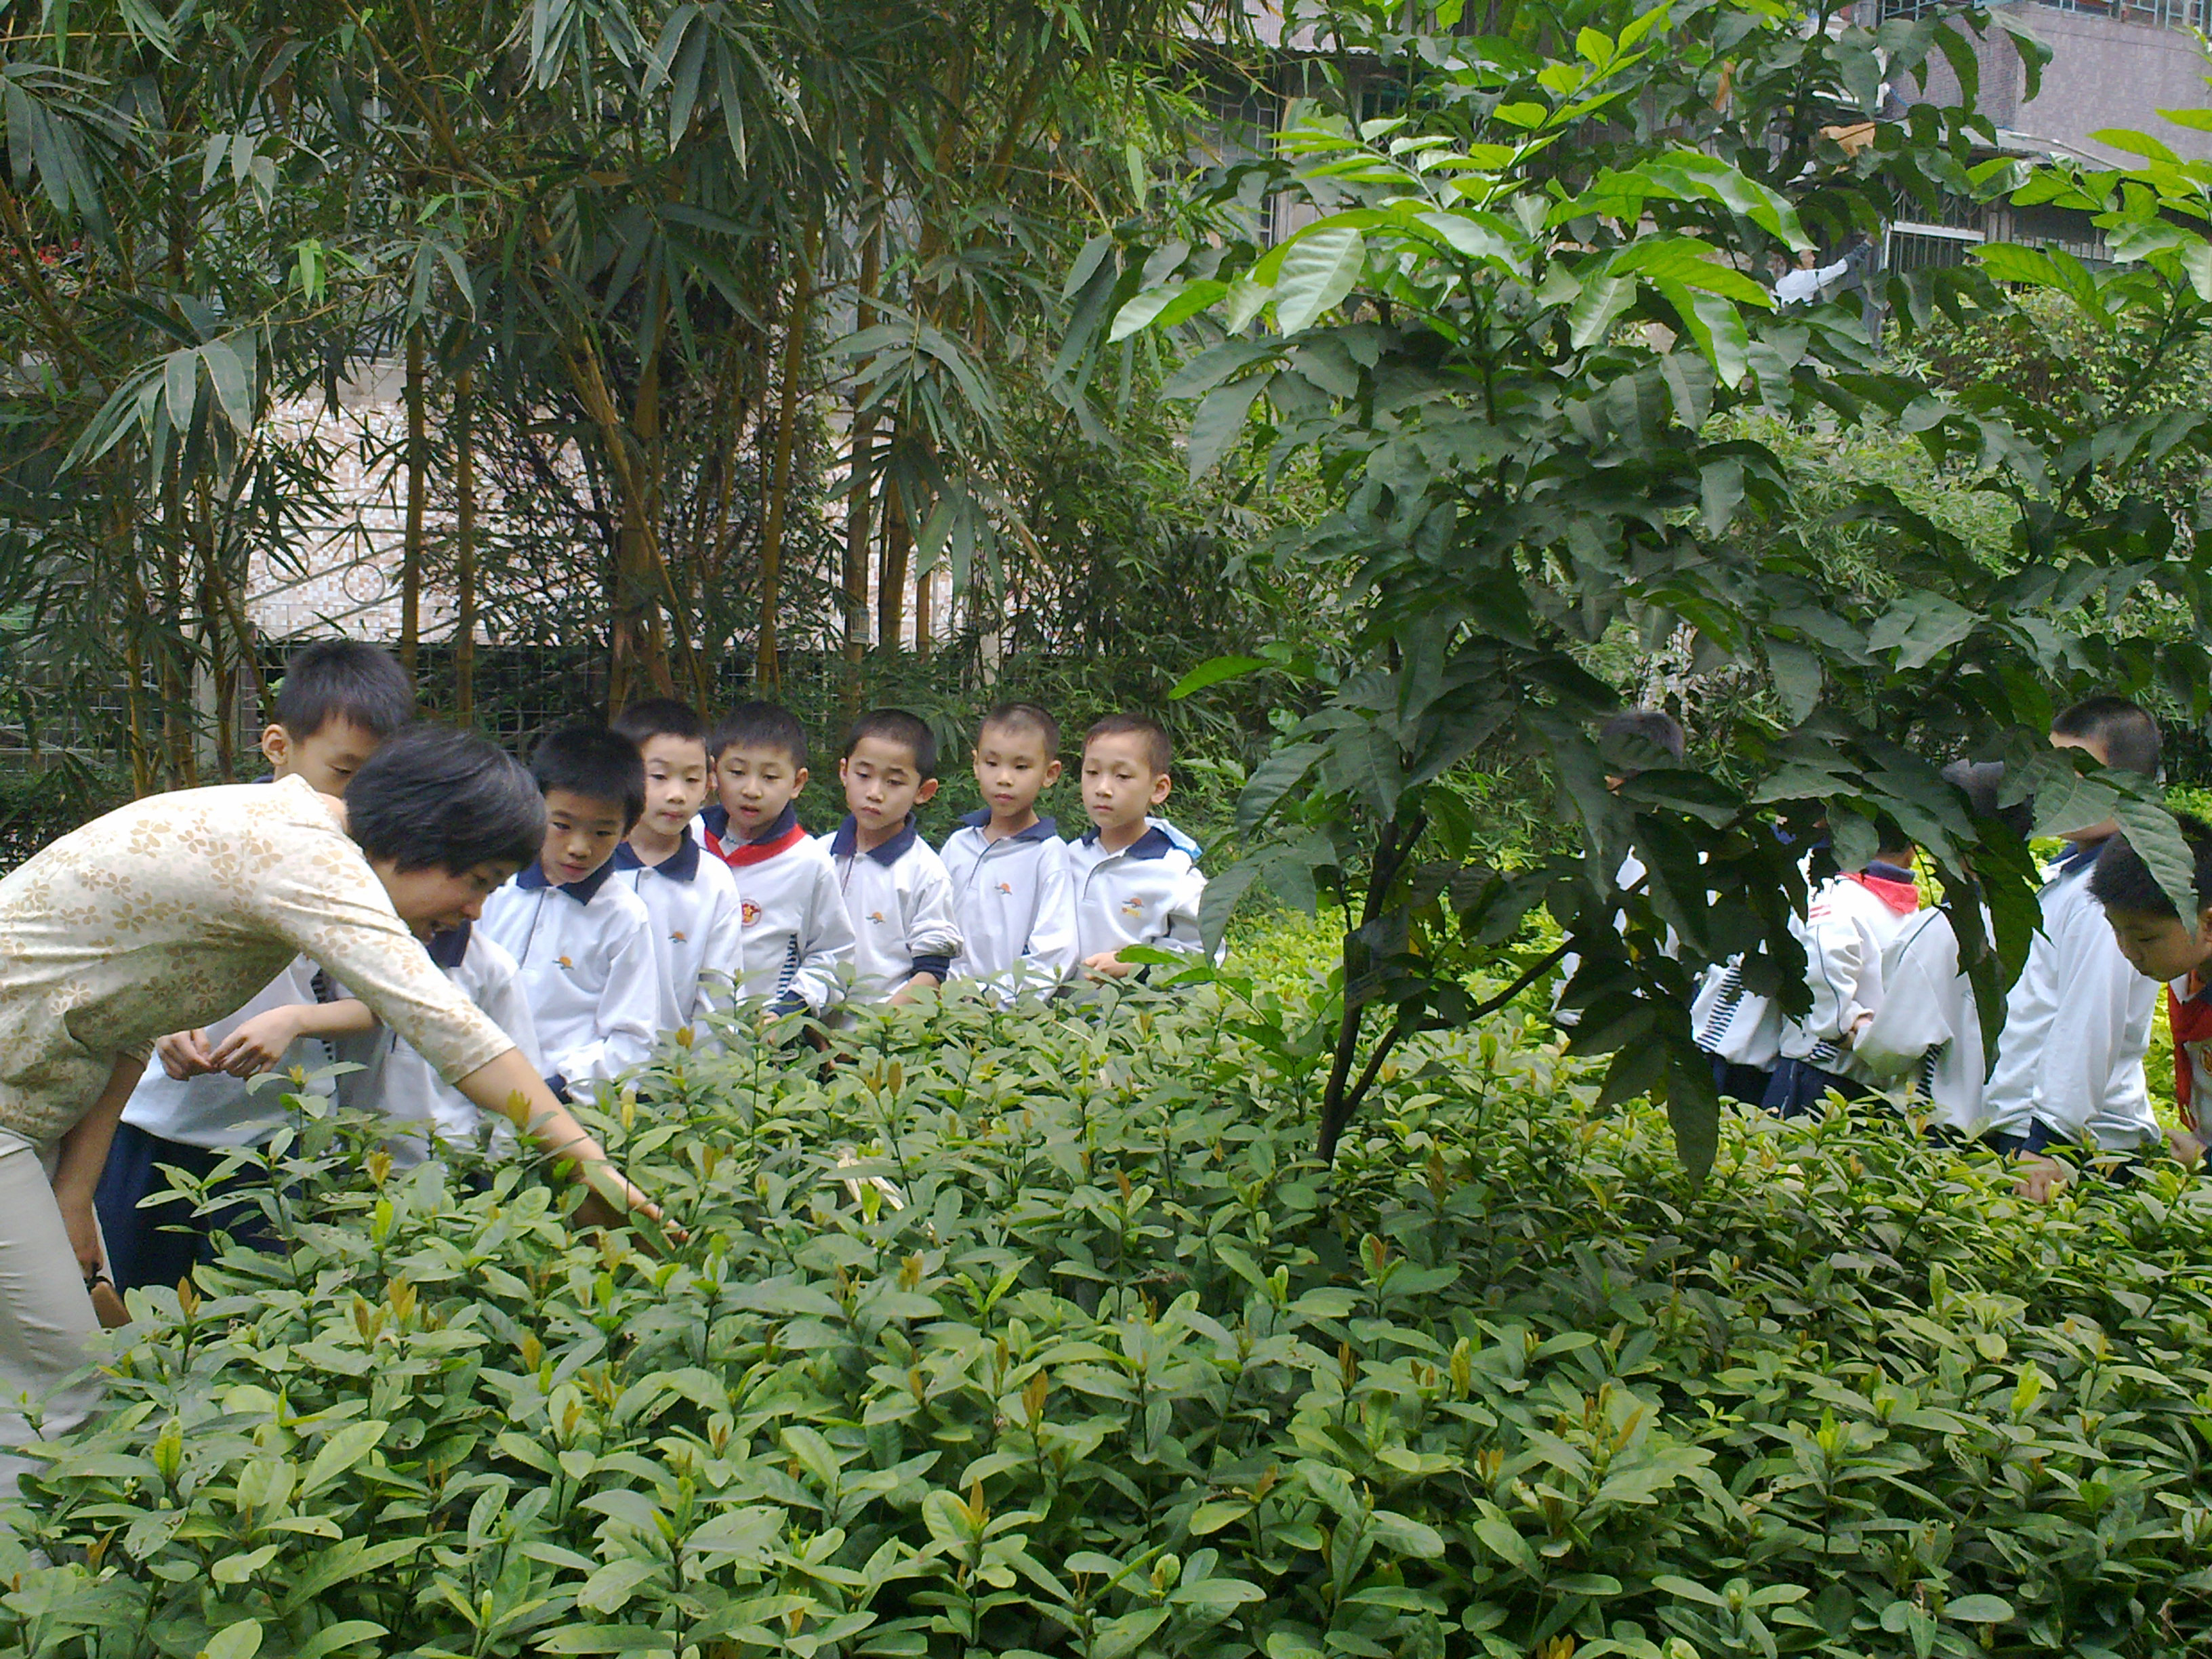 School children in a garden with their teacher